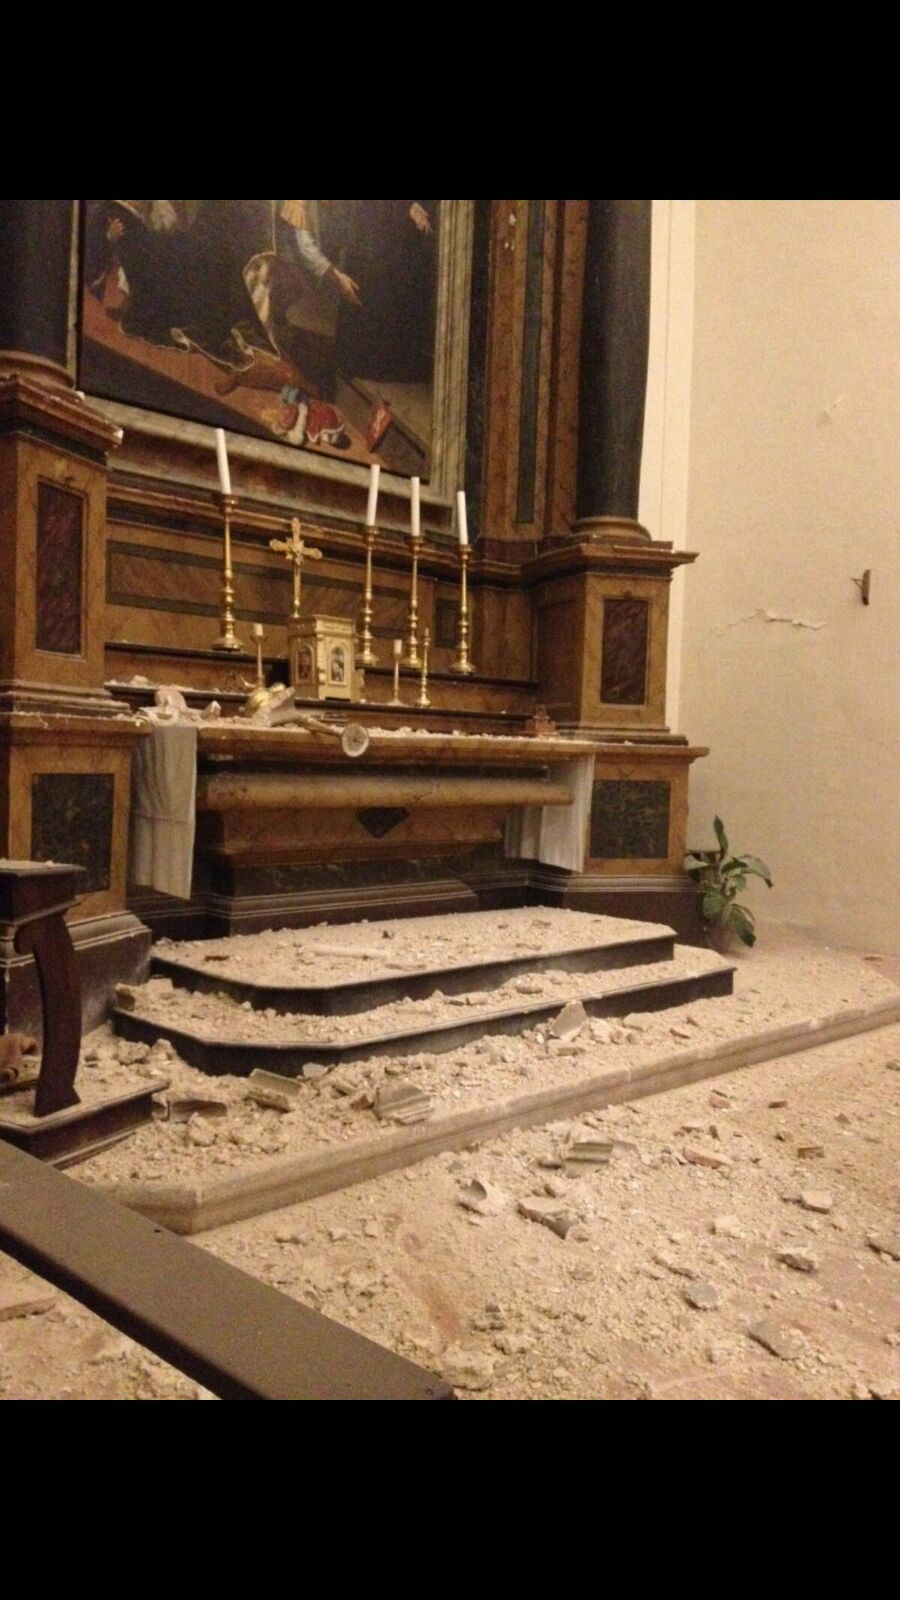 Altar of St. Benedict, Left Transept of the Basilica of St. Benedict, Norcia